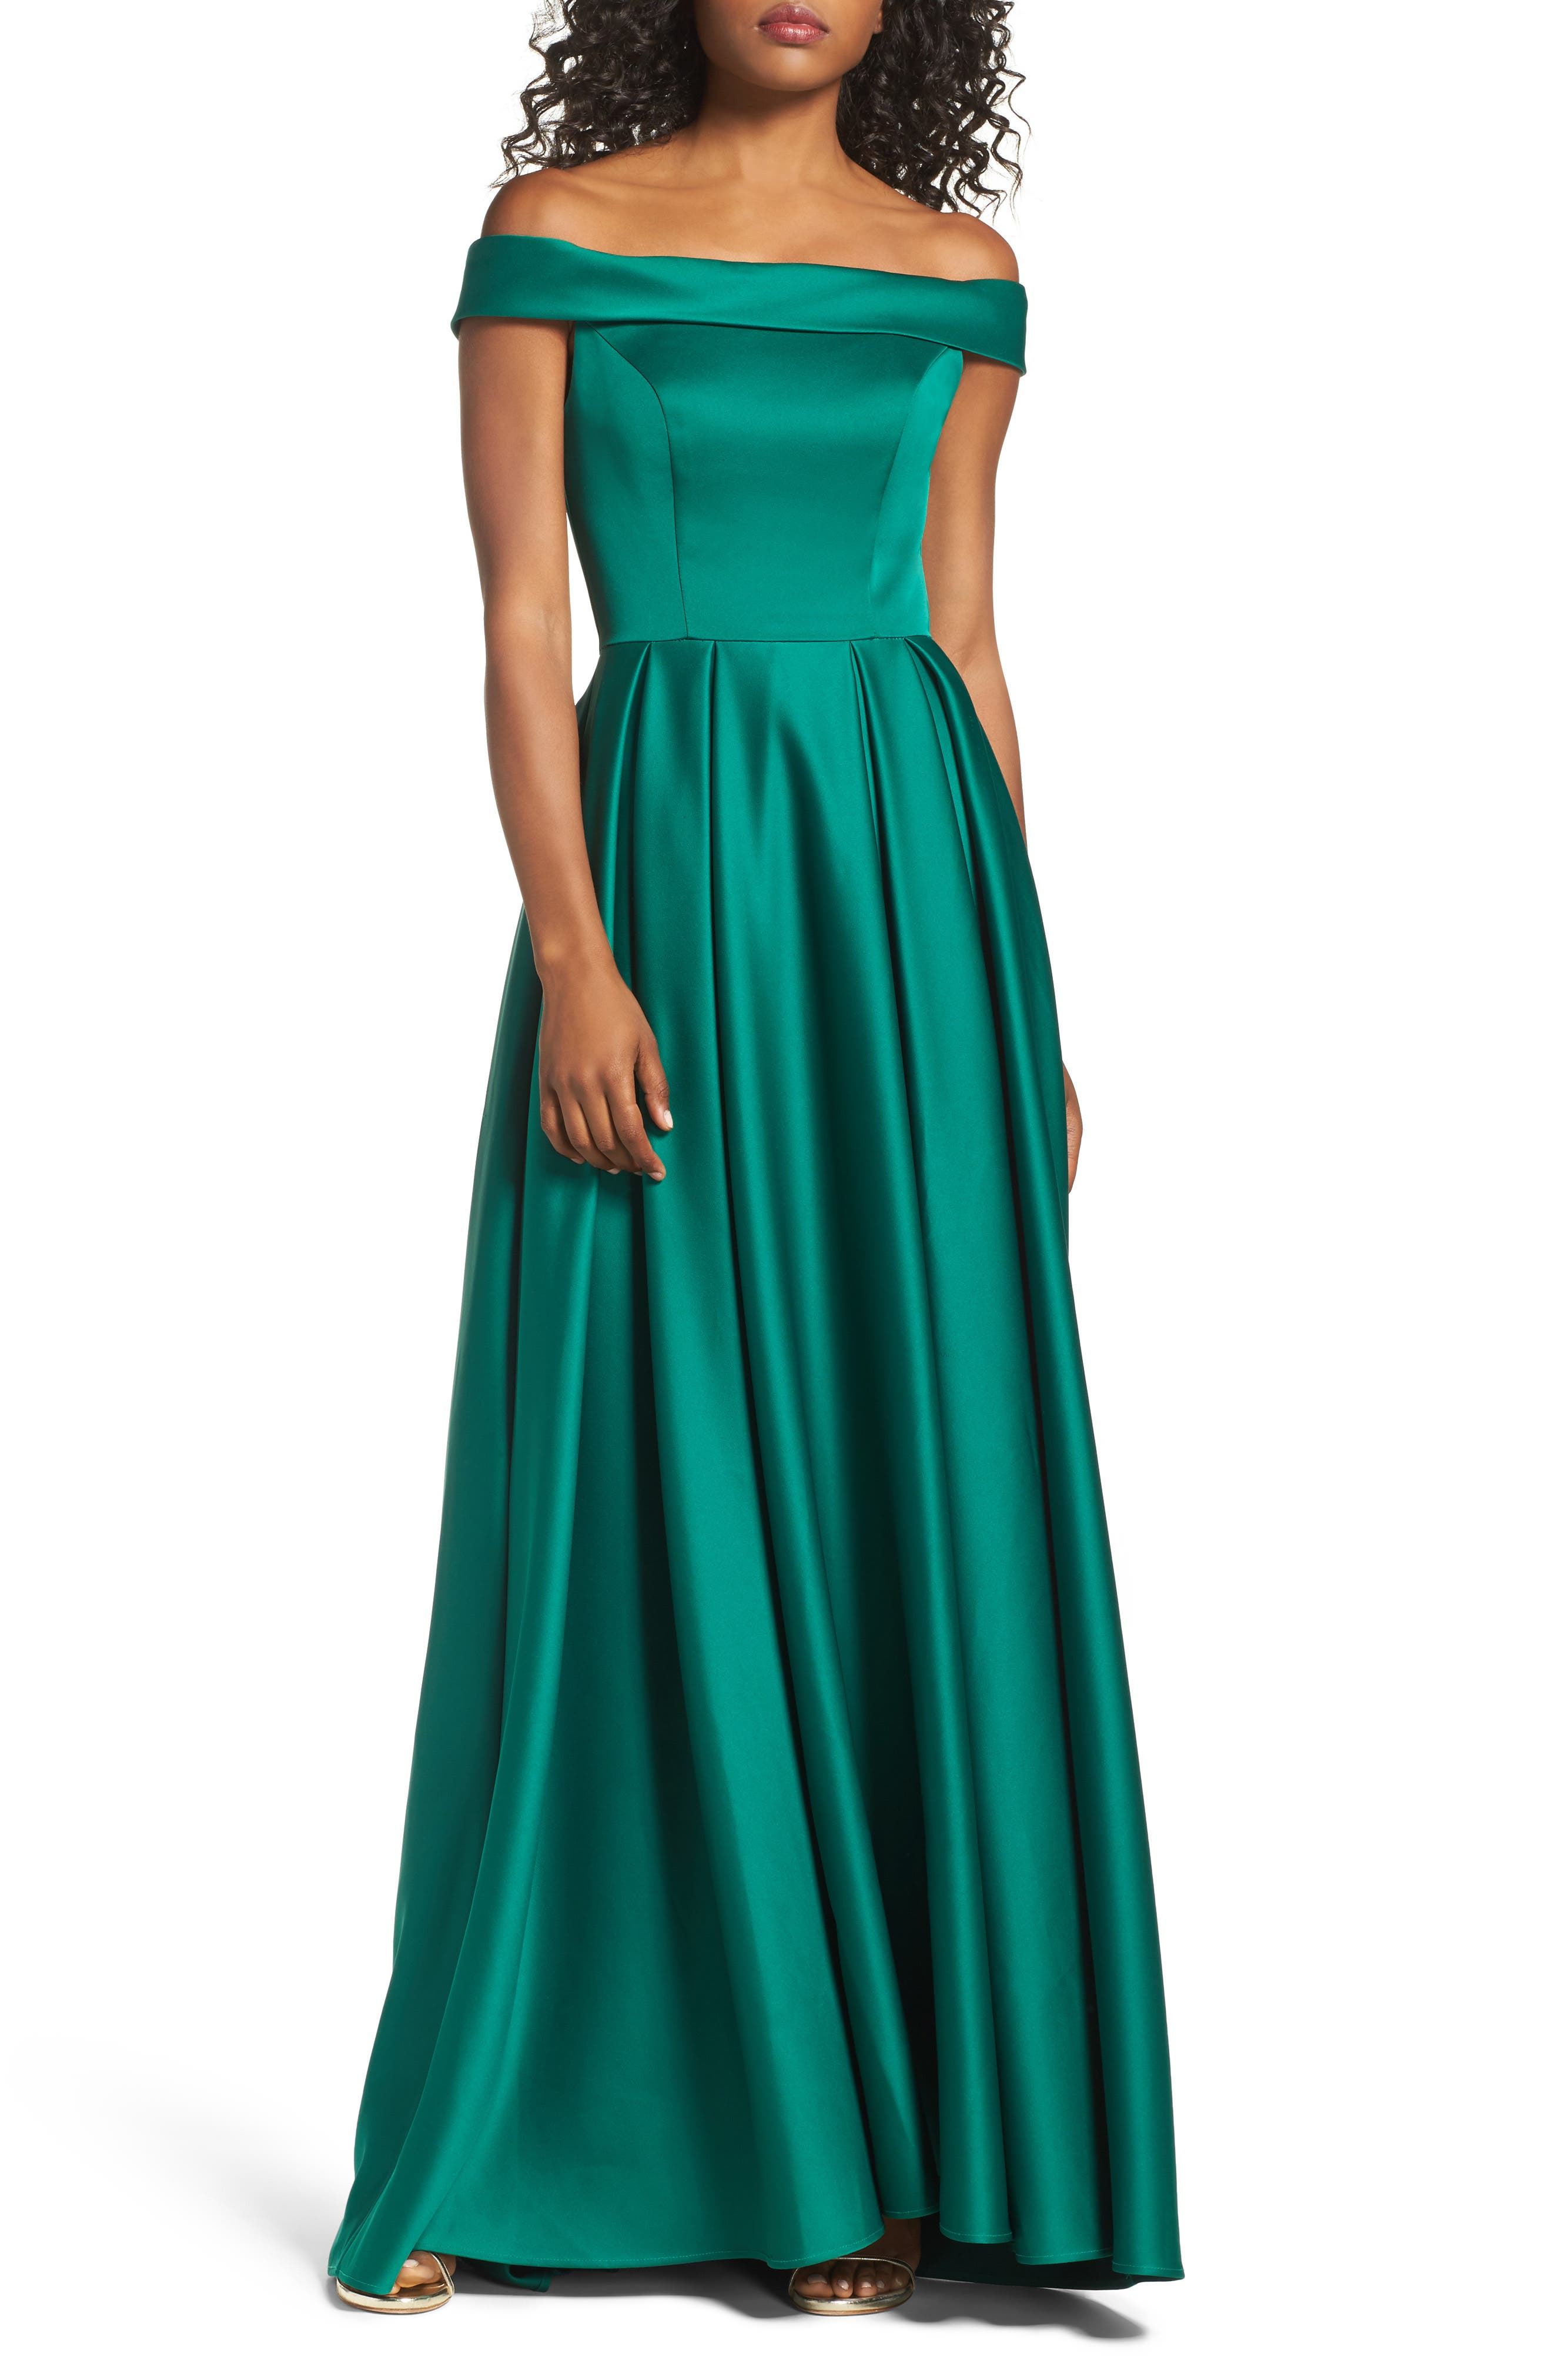 IEENA FOR MAC DUGGAL, Mikado Off the Shoulder Gown, Main thumbnail 1, color, 320